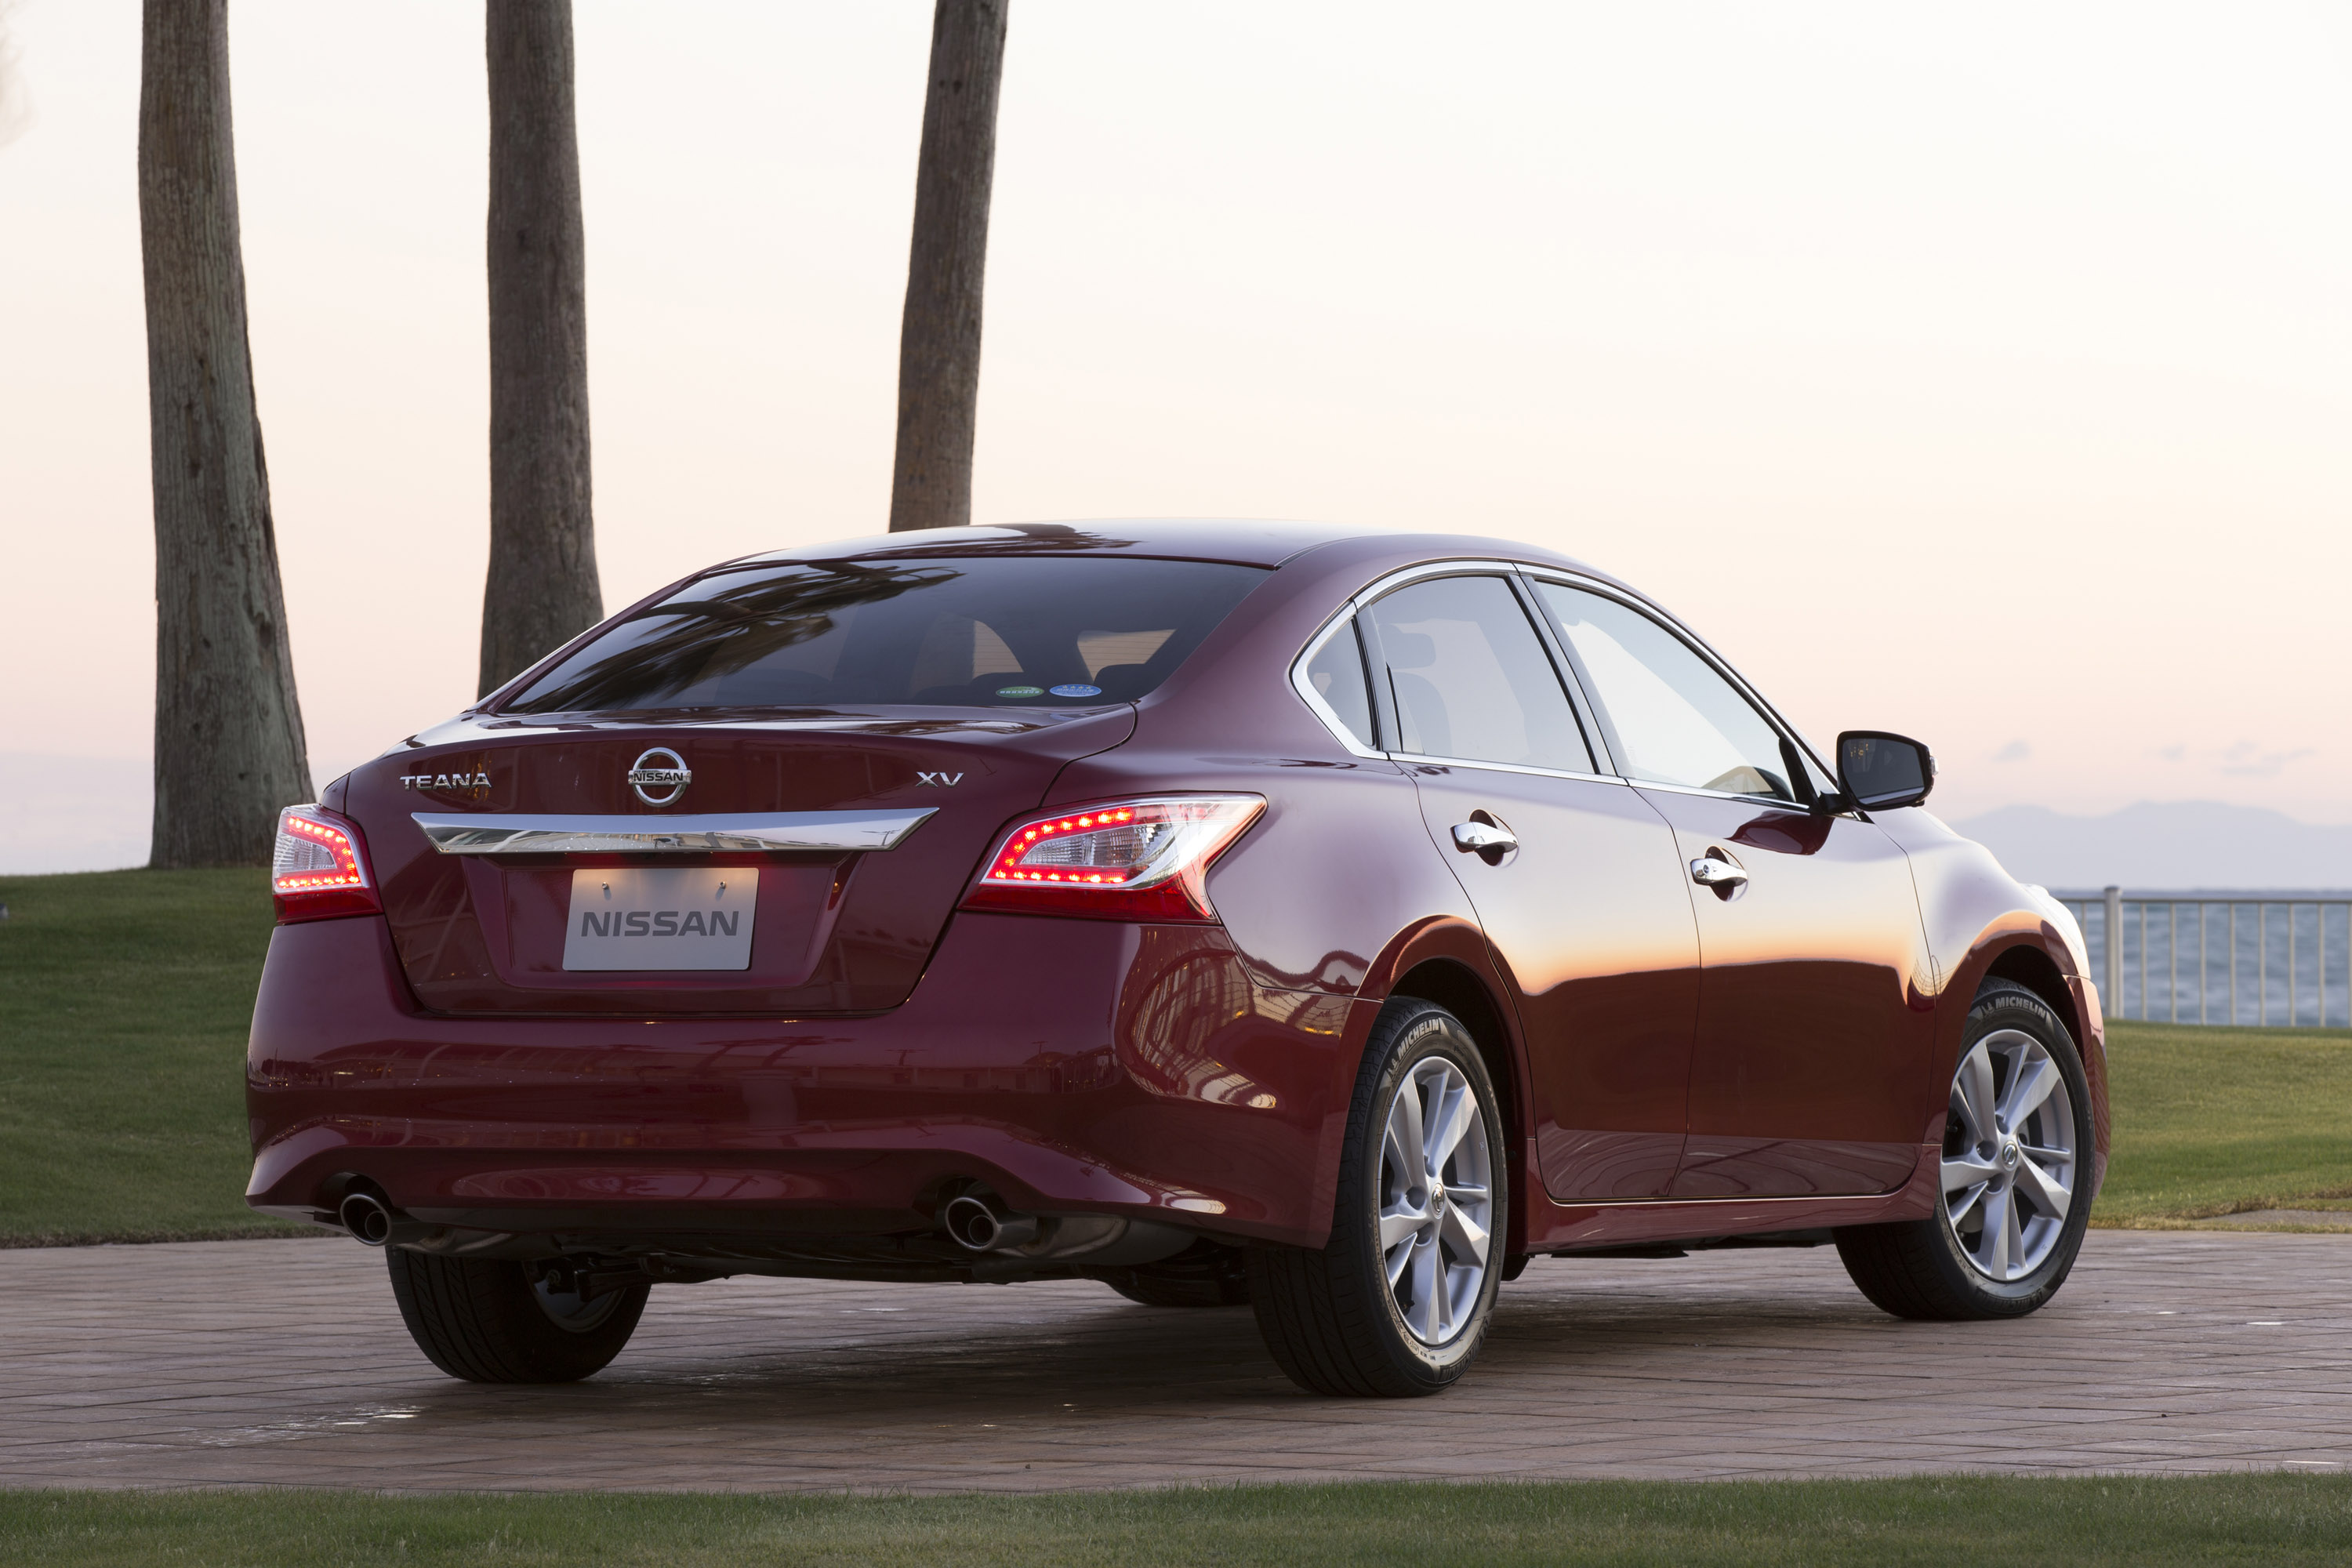 2014 Nissan Teana - Picture 93861